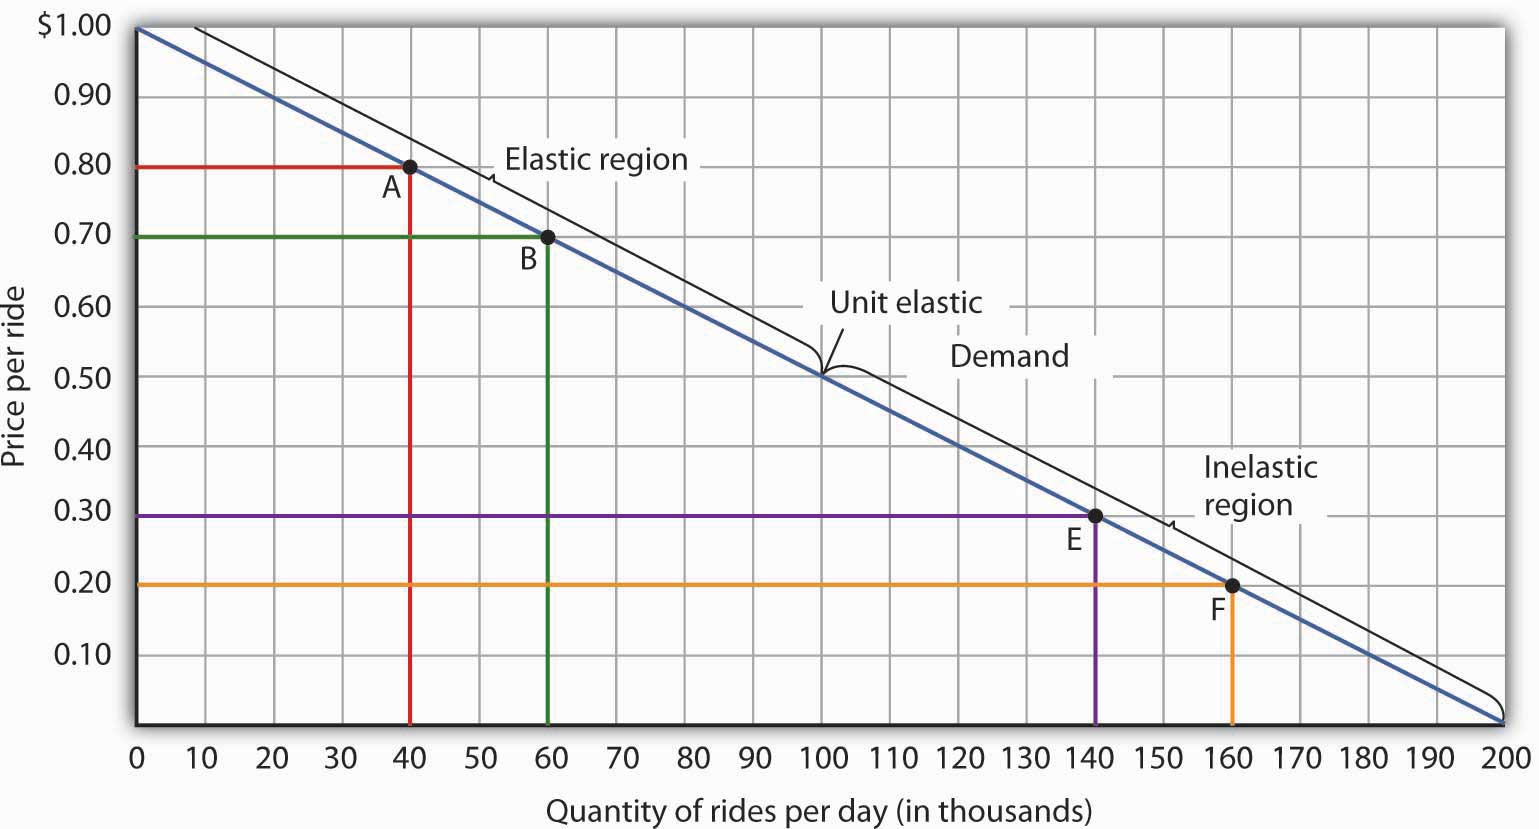 Changes in Total Revenue and a Linear Demand Curve. Moving from point A to point B implies a reduction in price and an increase in the quantity demanded. Demand is elastic between these two points. Total revenue, shown by the areas of the rectangles drawn from points A and B to the origin, rises. When we move from point E to point F, which is in the inelastic region of the demand curve, total revenue falls.